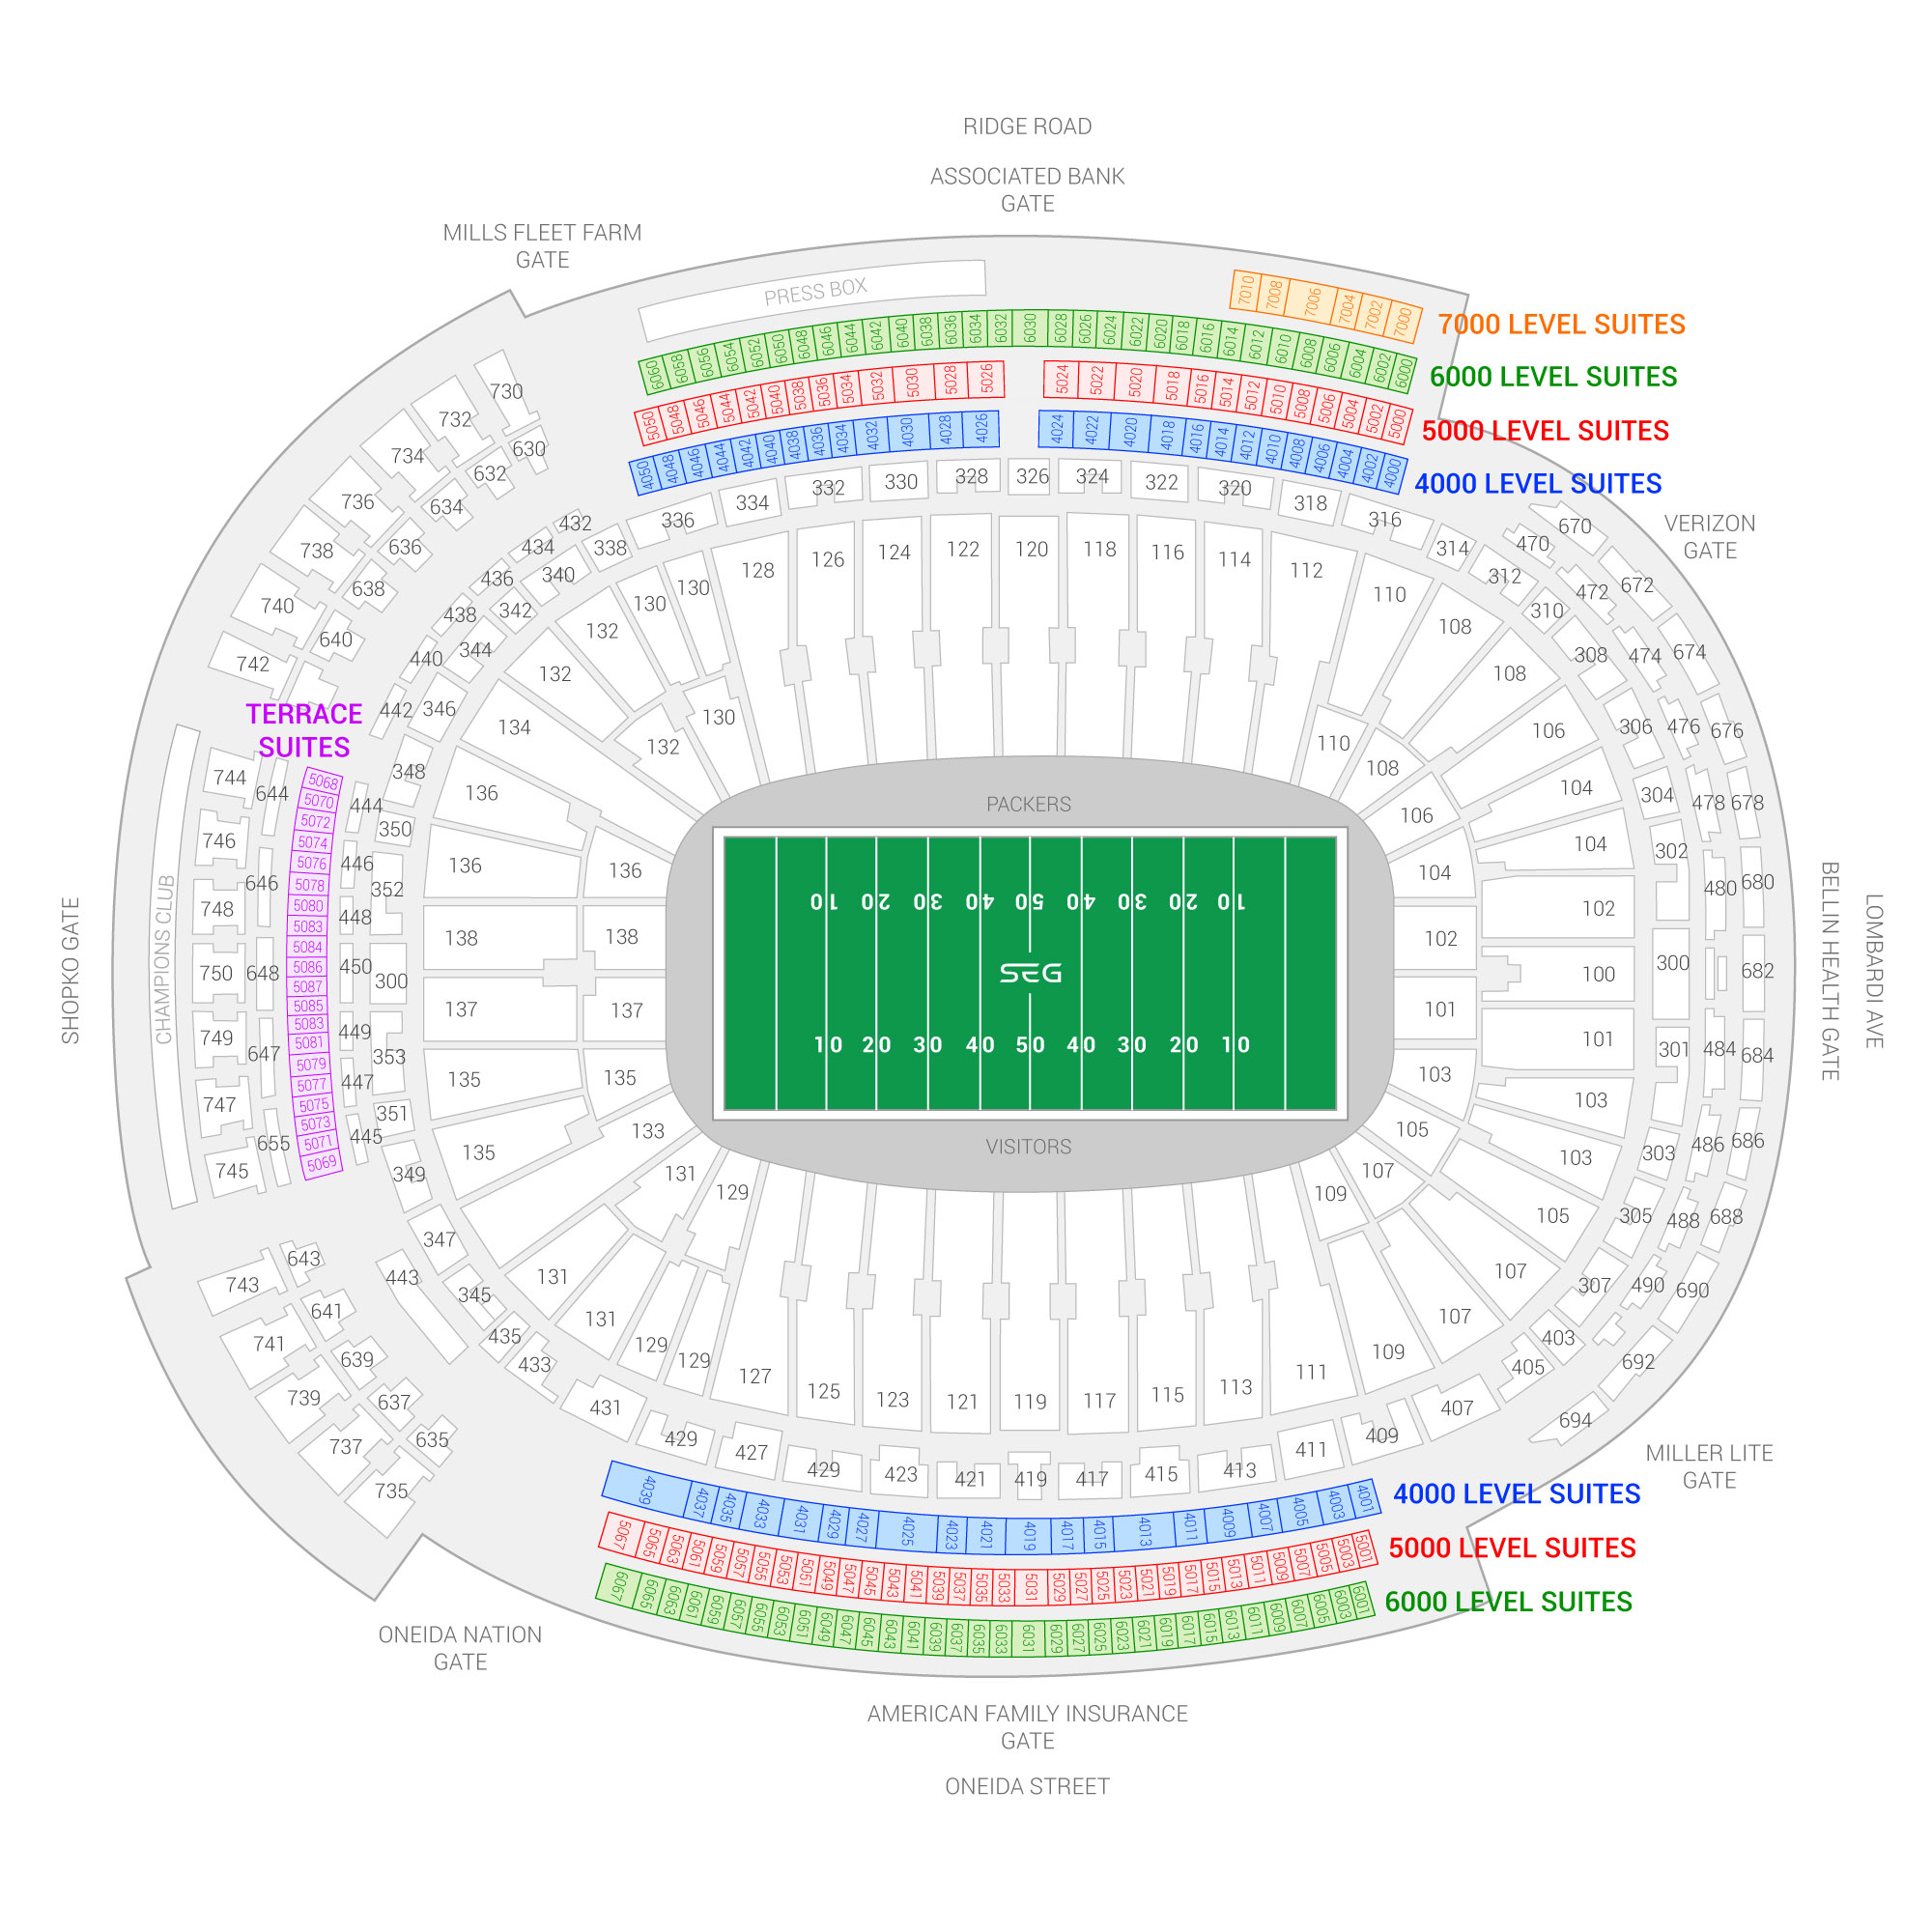 Lambeau Field / Green Bay Packers Suite Map and Seating Chart